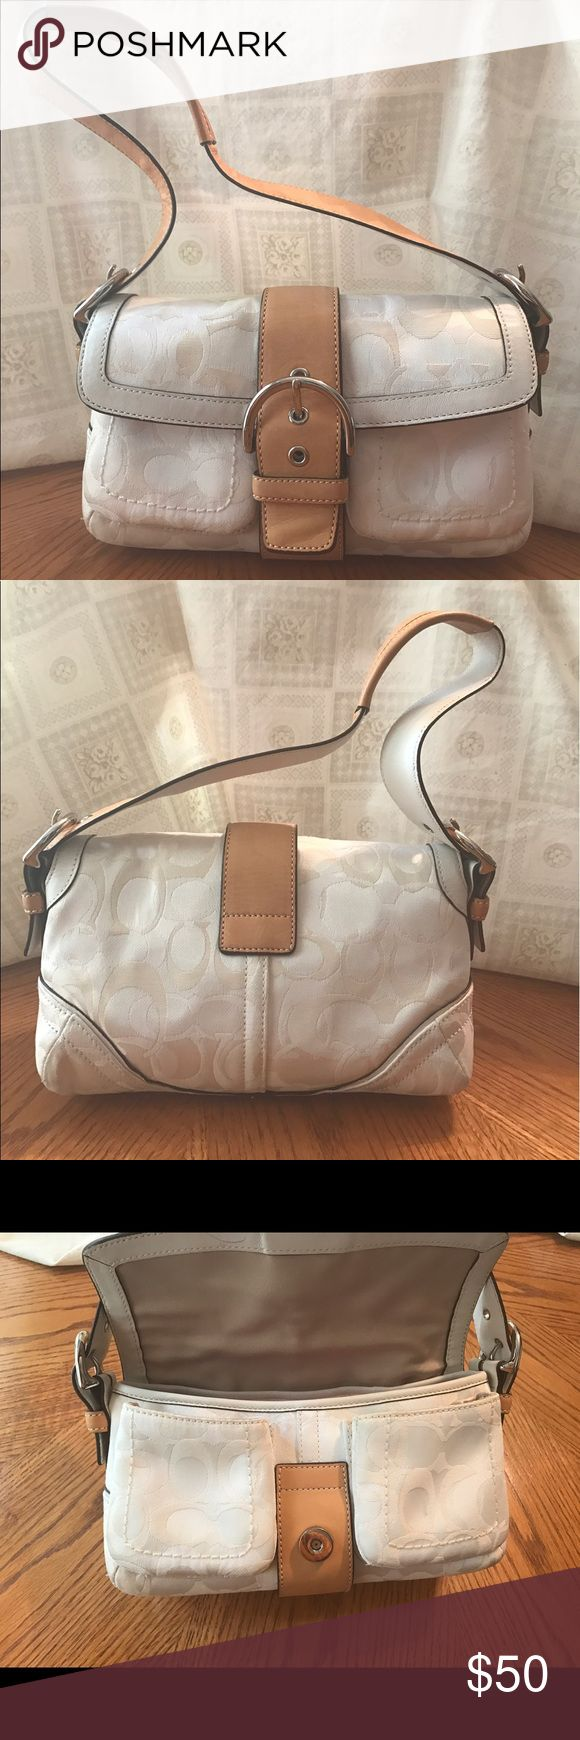 Authentic Coach Shoulder Bag Beautiful Authentic Coach bag. Light cream in color, very clean and in excellent condition. The bag size is between Medium and Small. There is a dark mark on the underside of the shoulder strap. Coach Bags Shoulder Bags